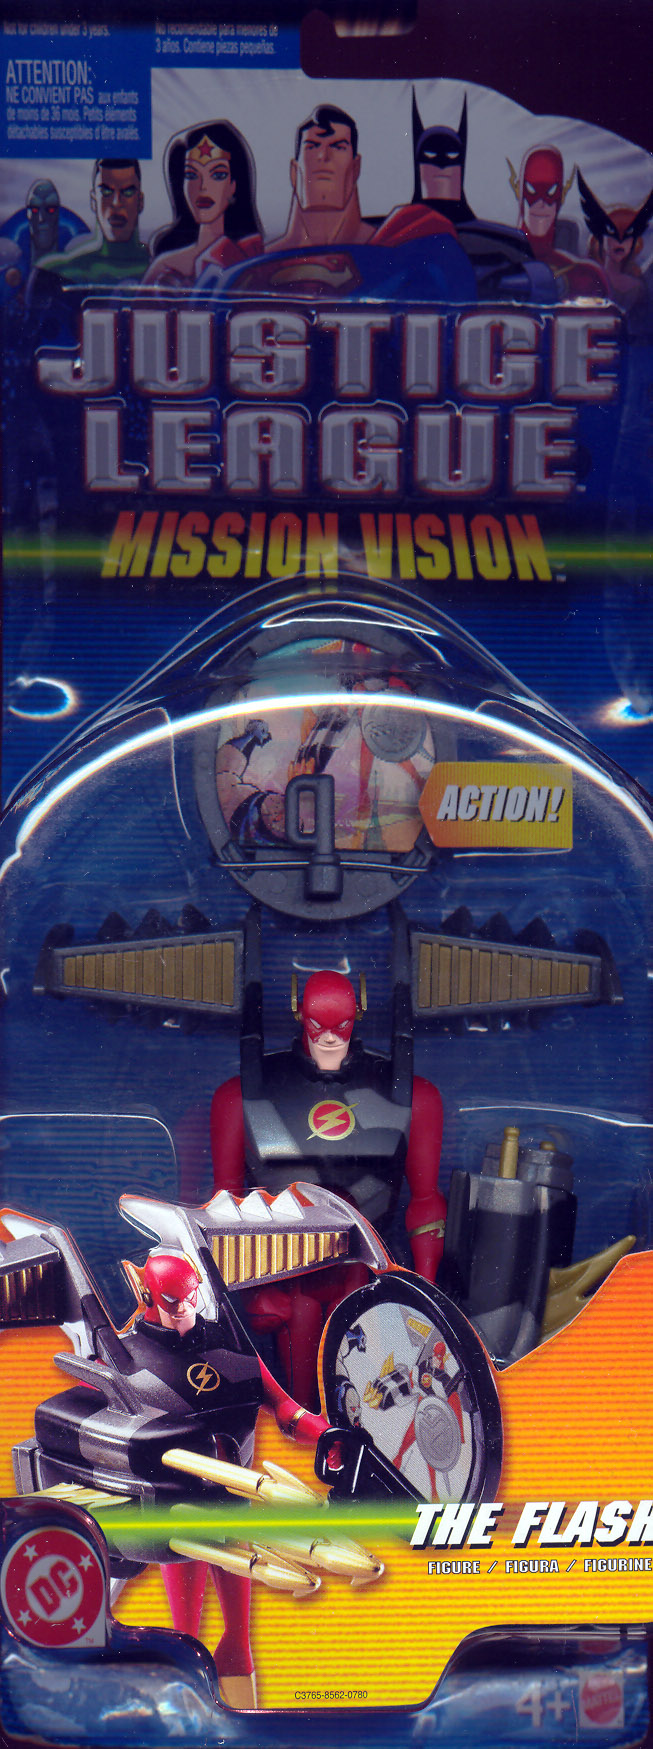 The Flash (Mission Vision)